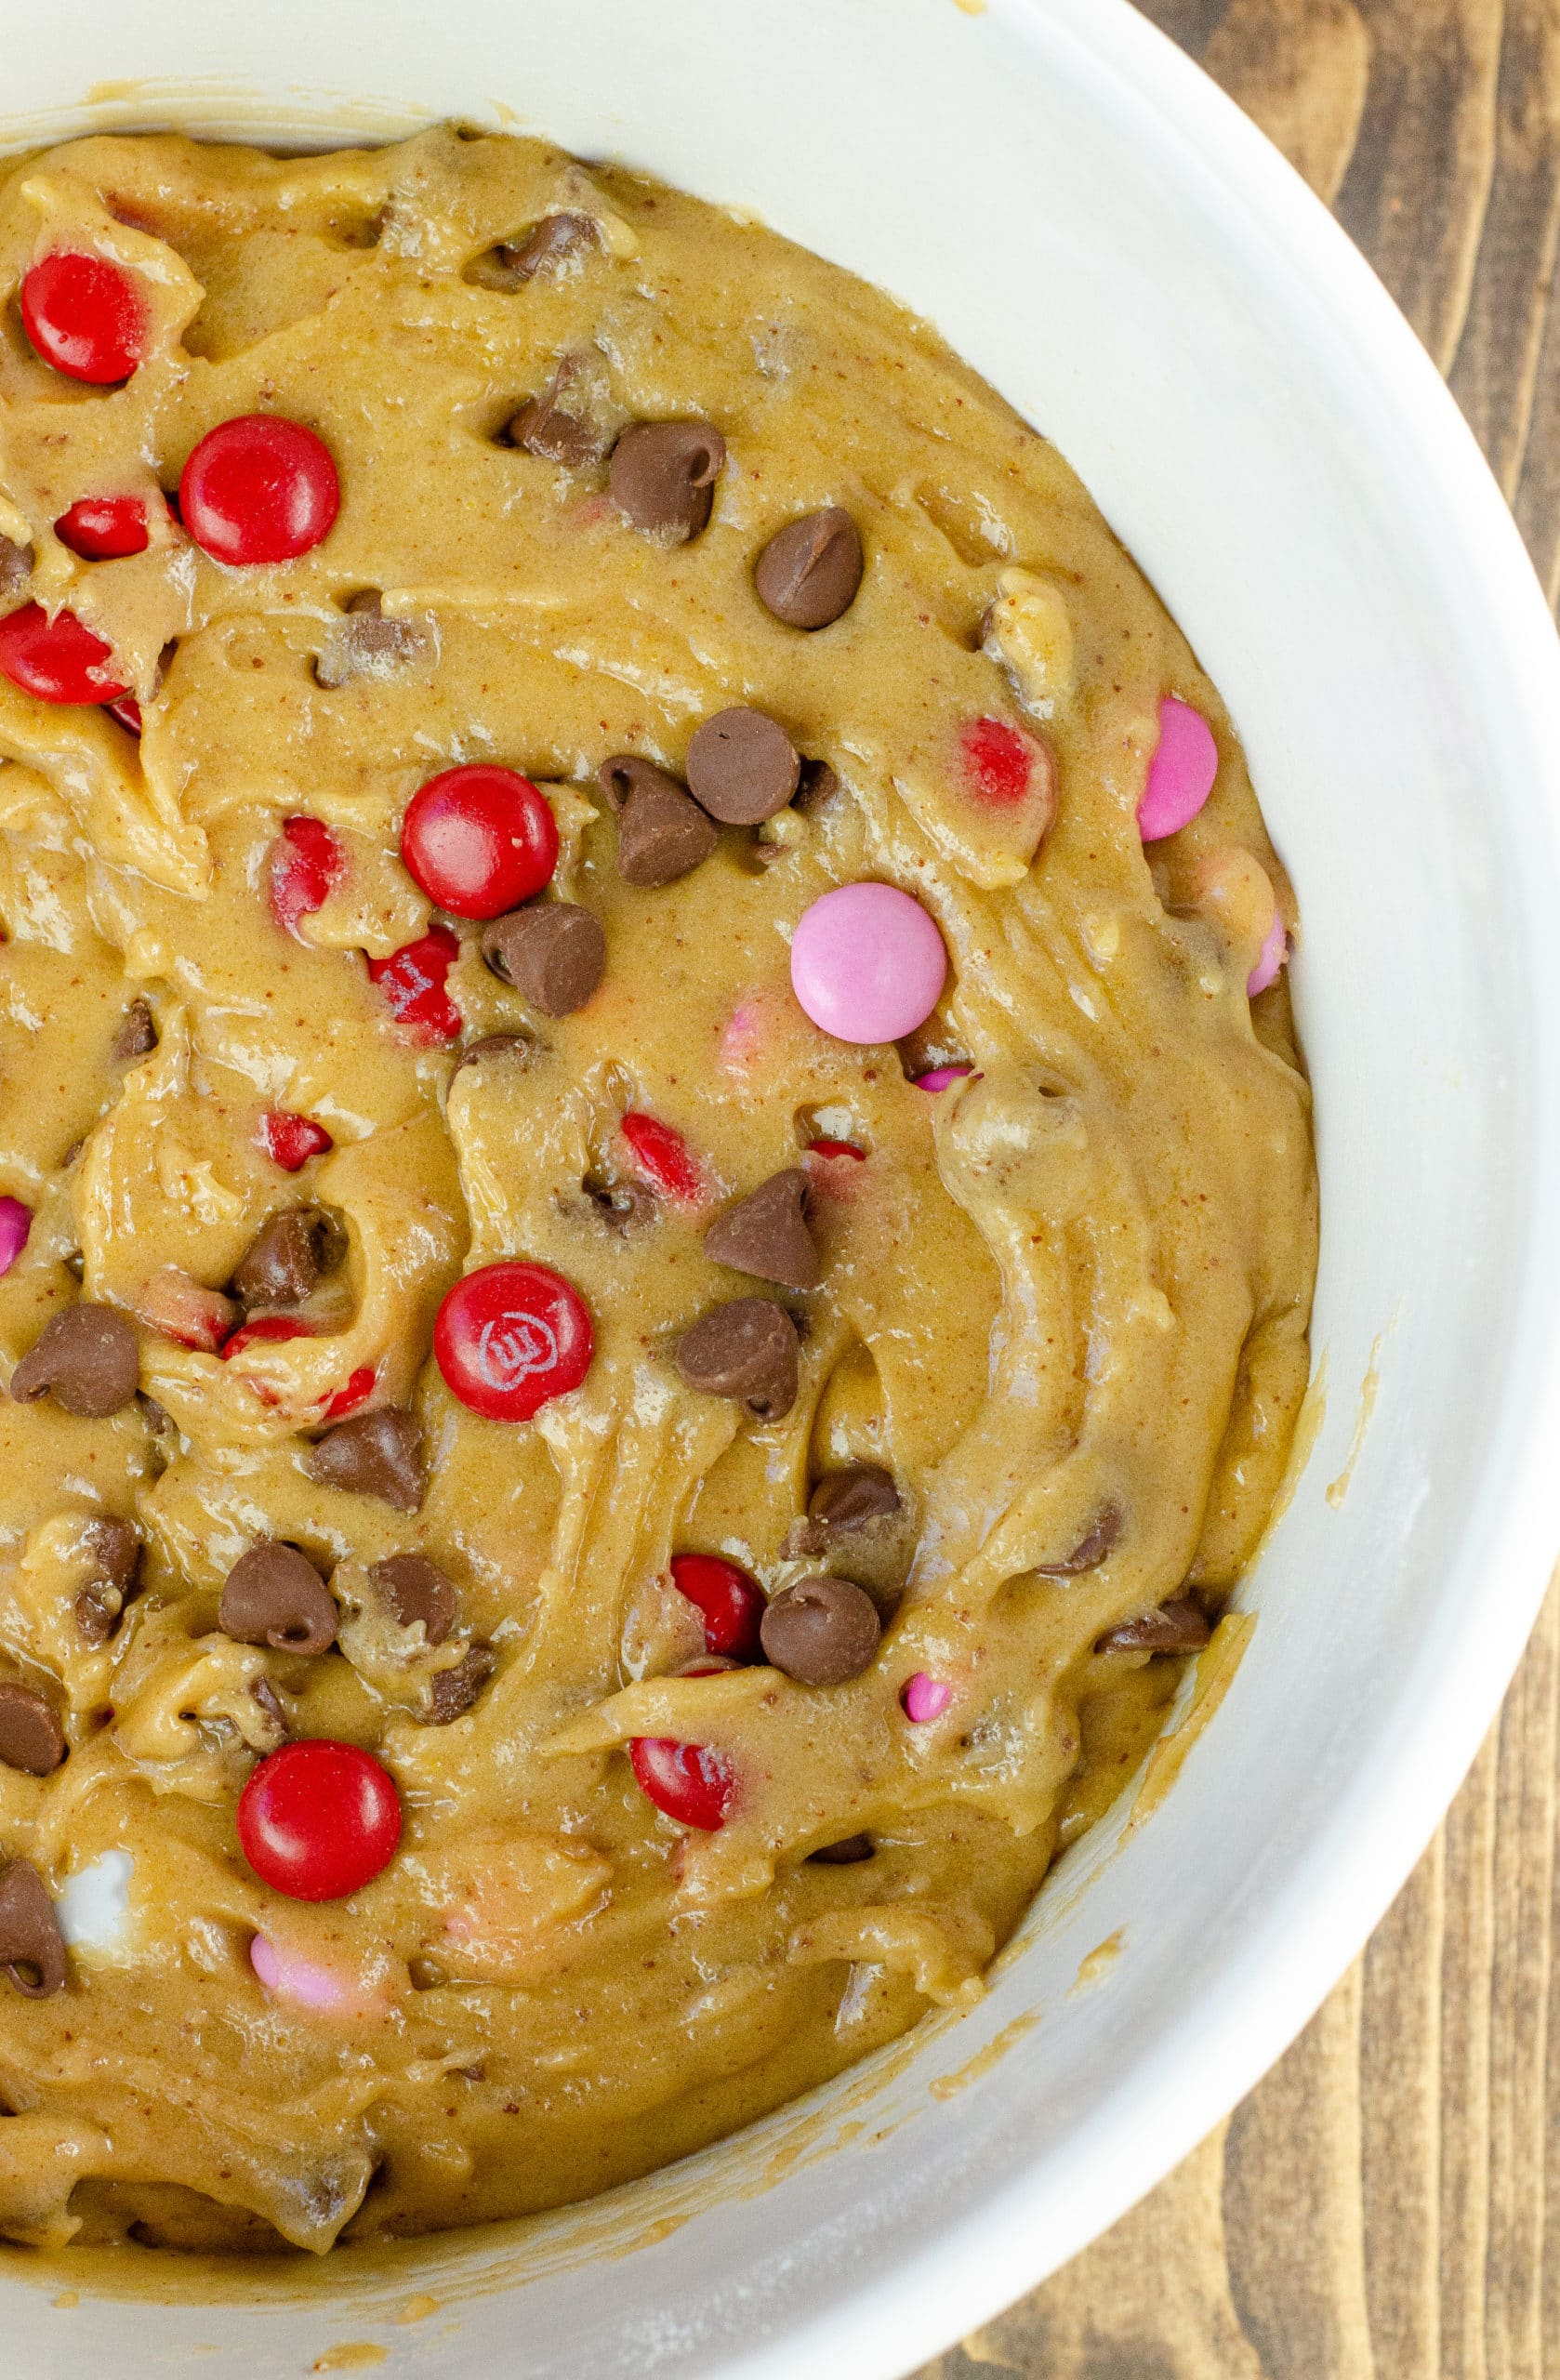 Browned Butter M&M Blondies Dough. These Valentine's day themed Browned Butter M&M Blondies are the perfect way to say I heart you to someone special. I love to bake them for my little ones year-round. They are so chewy and chocolatey they make it easy for me to look like a master dessert chef.